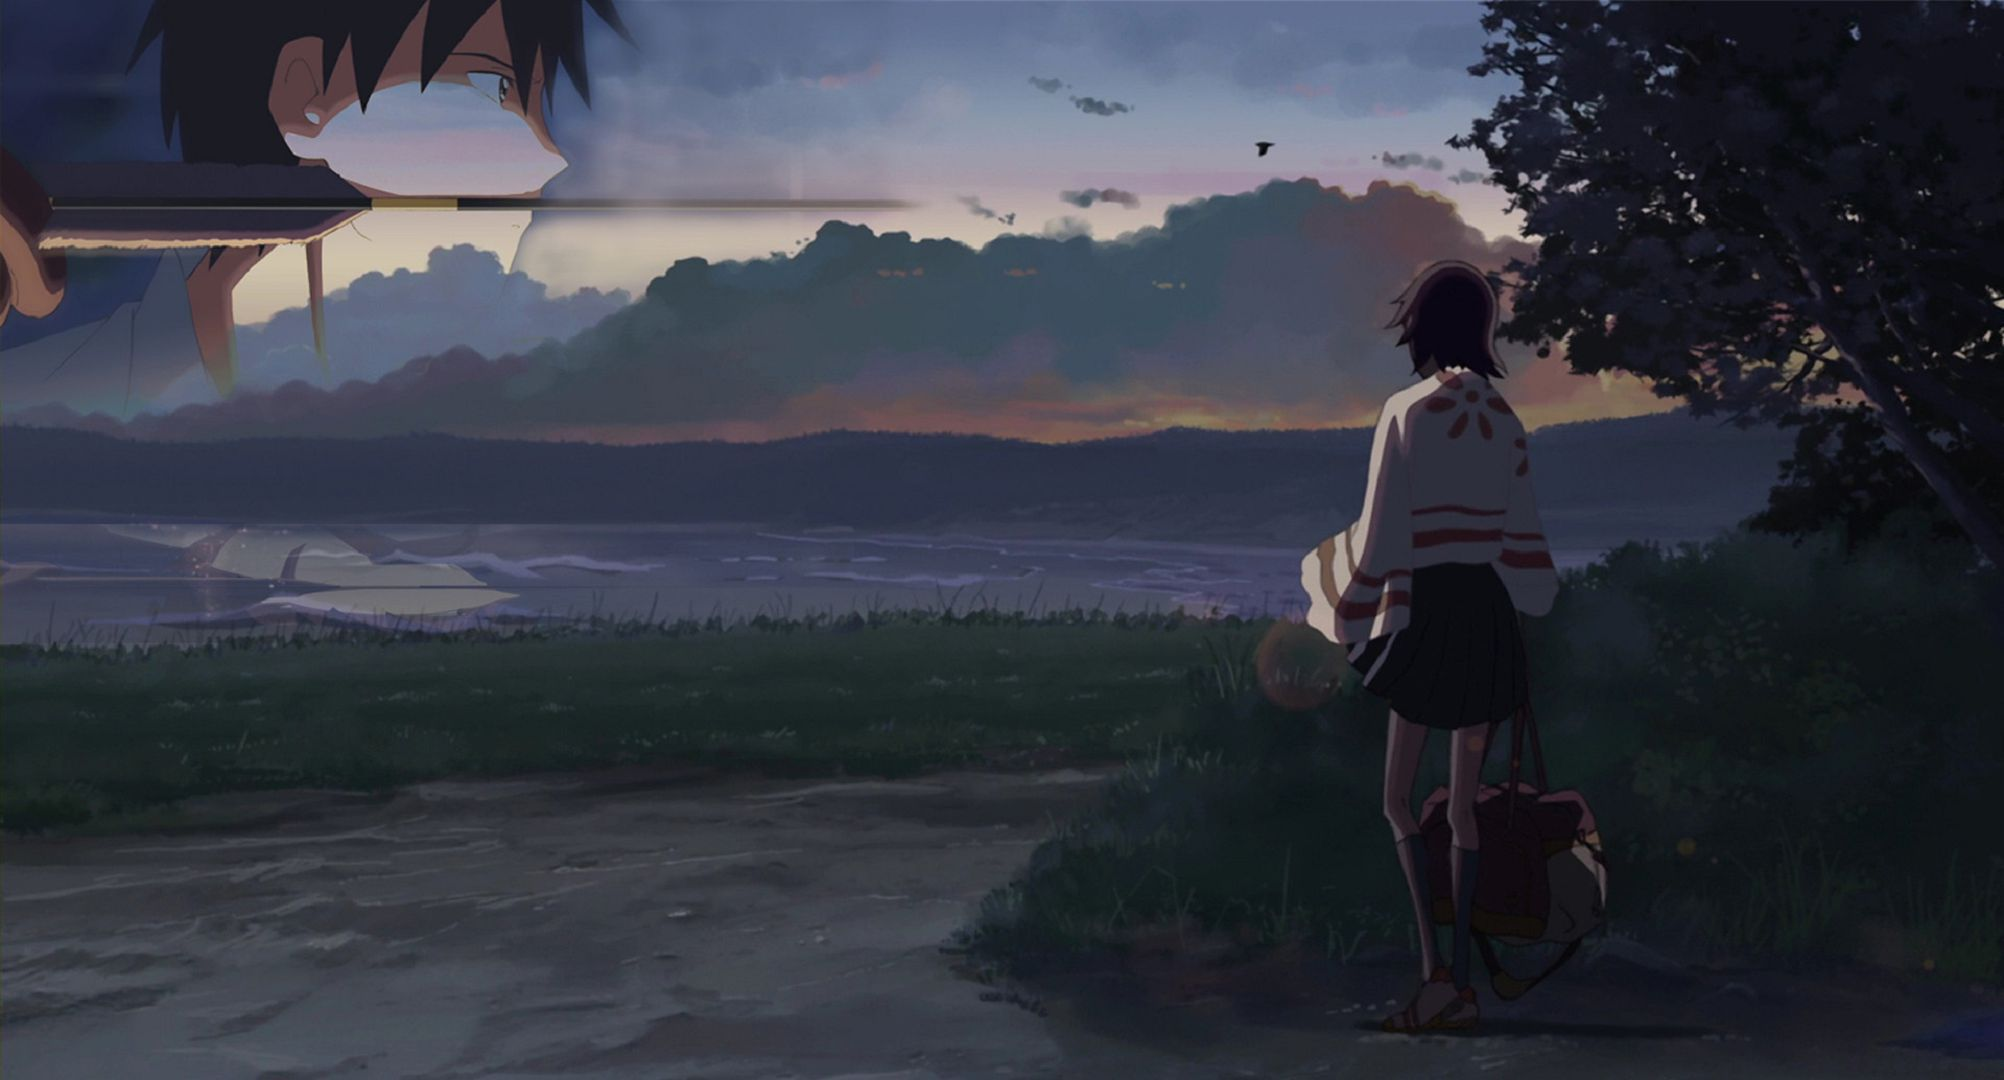 Free Animated Wallpaper Backgrounds 5 Centimeters Per Second Wallpapers Backgrounds